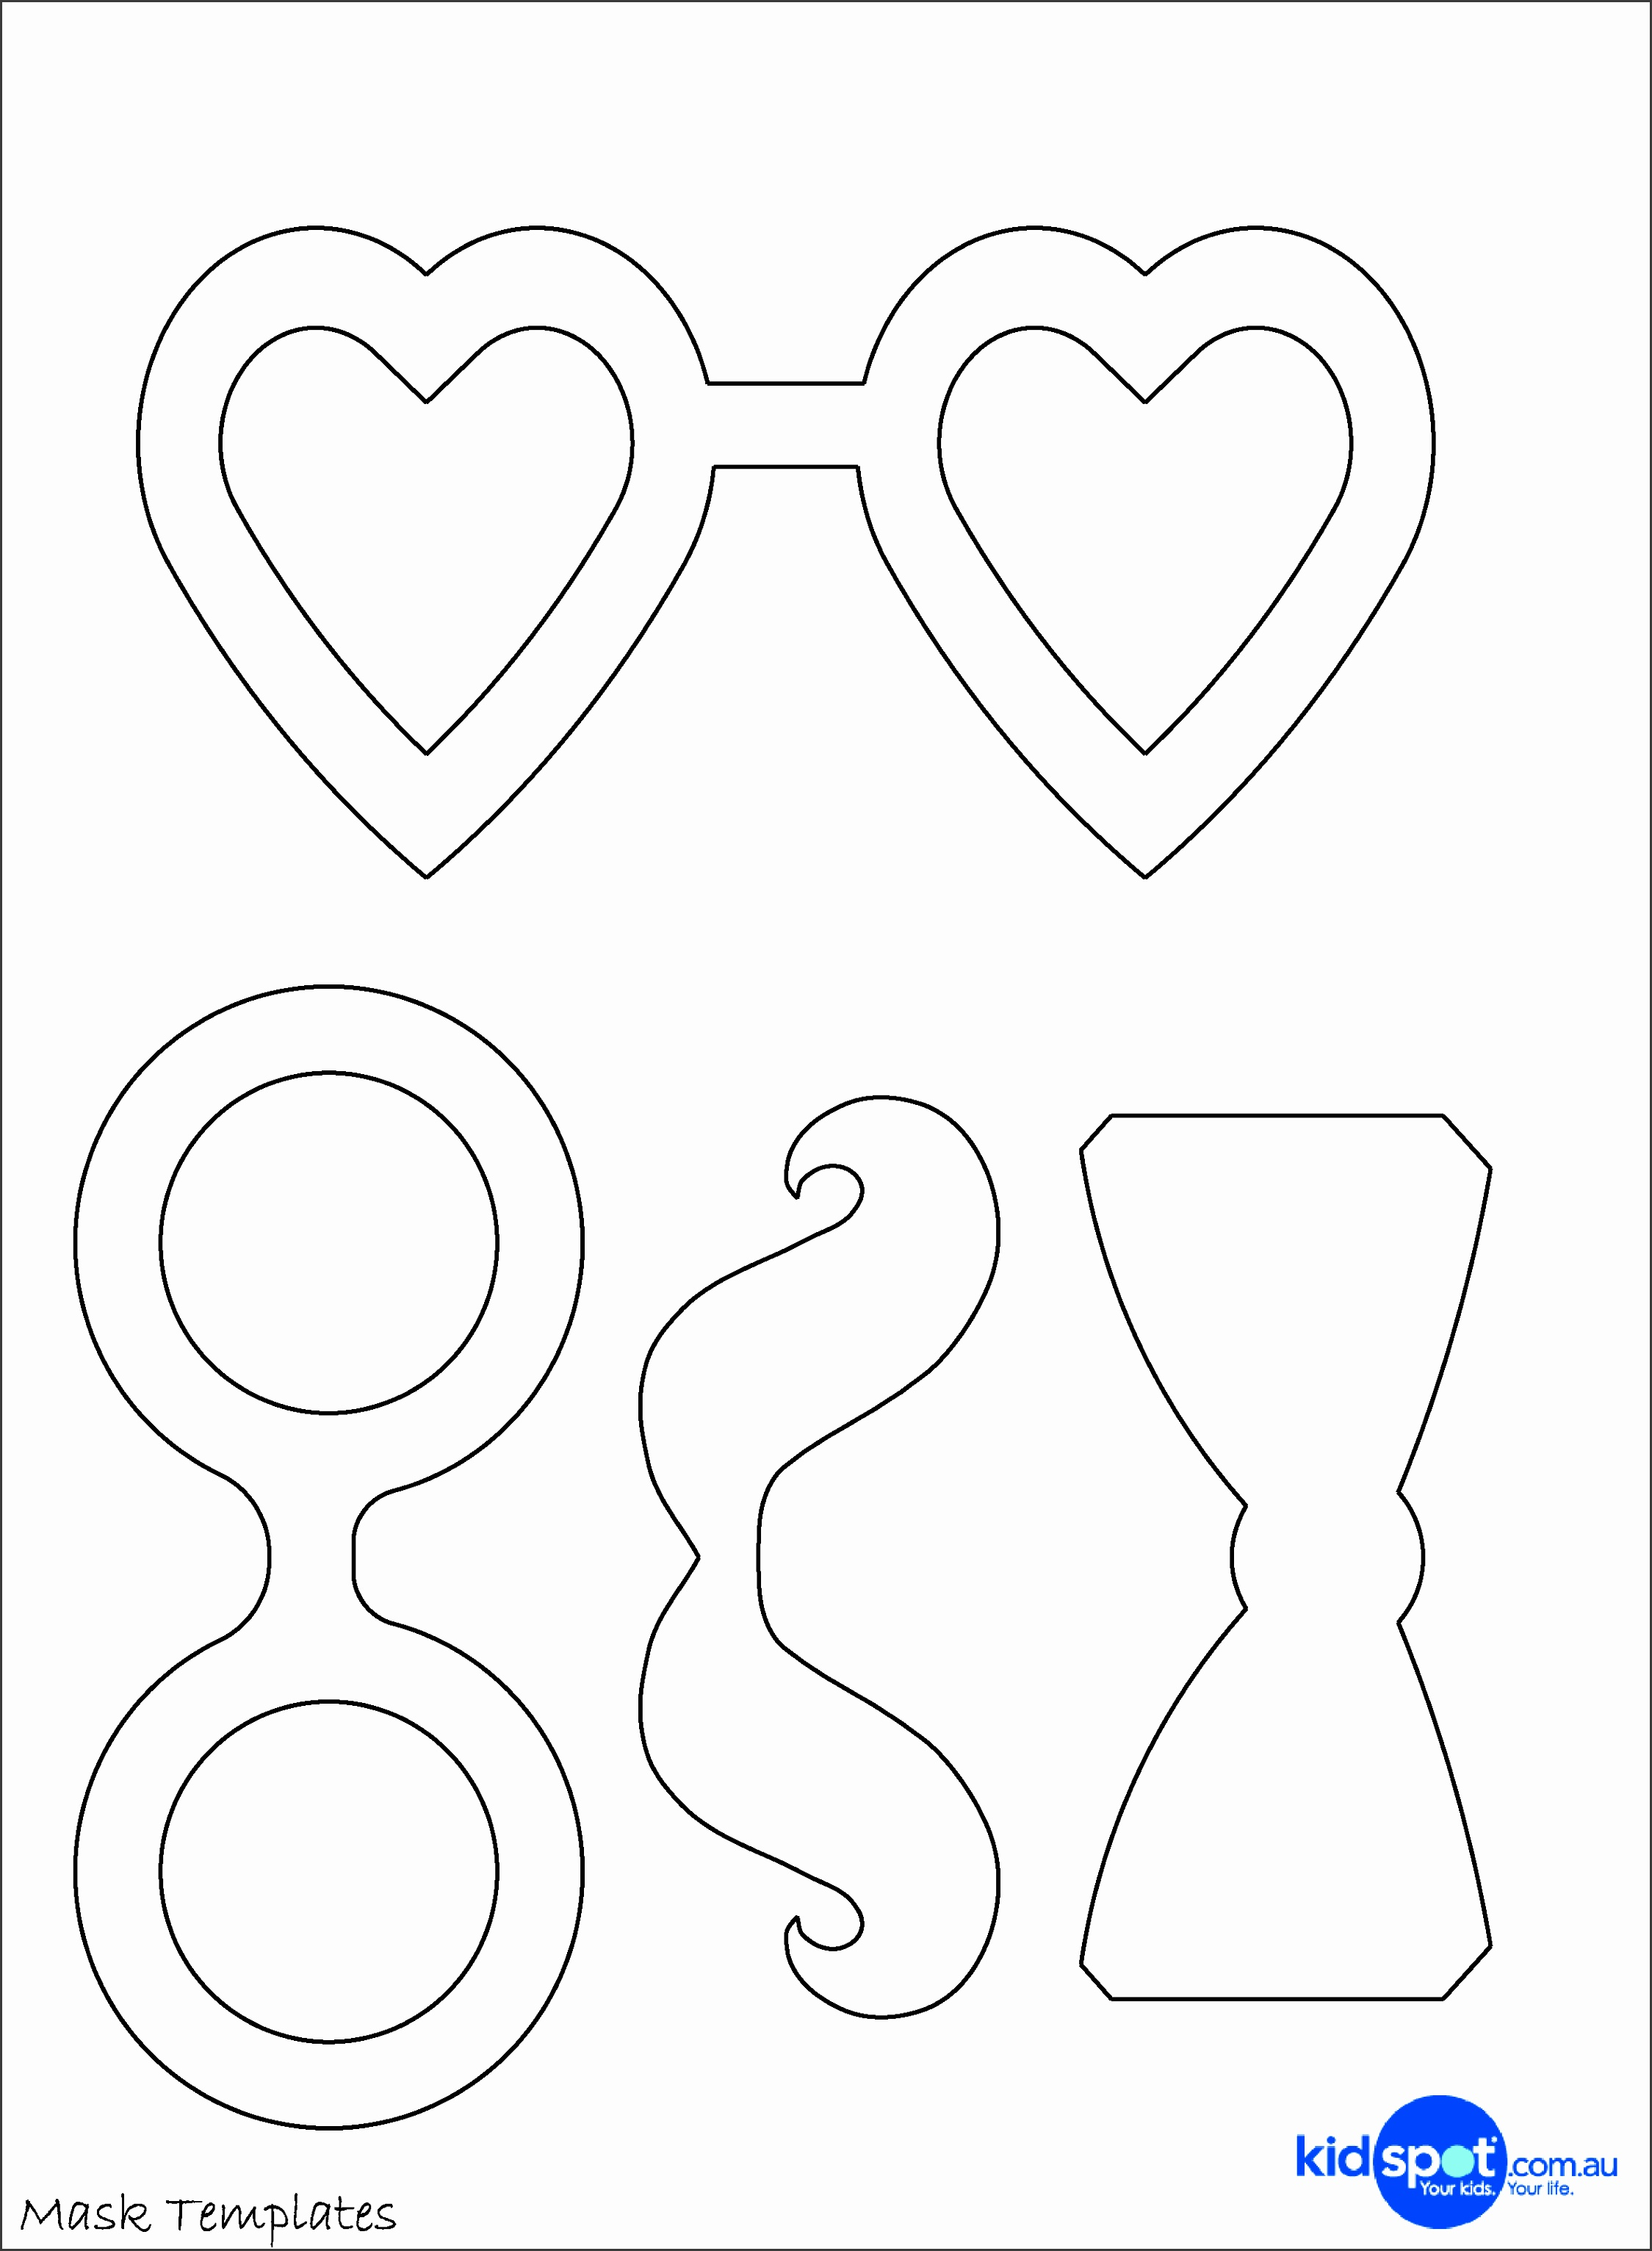 16 s of Paper Masquerade Mask Template